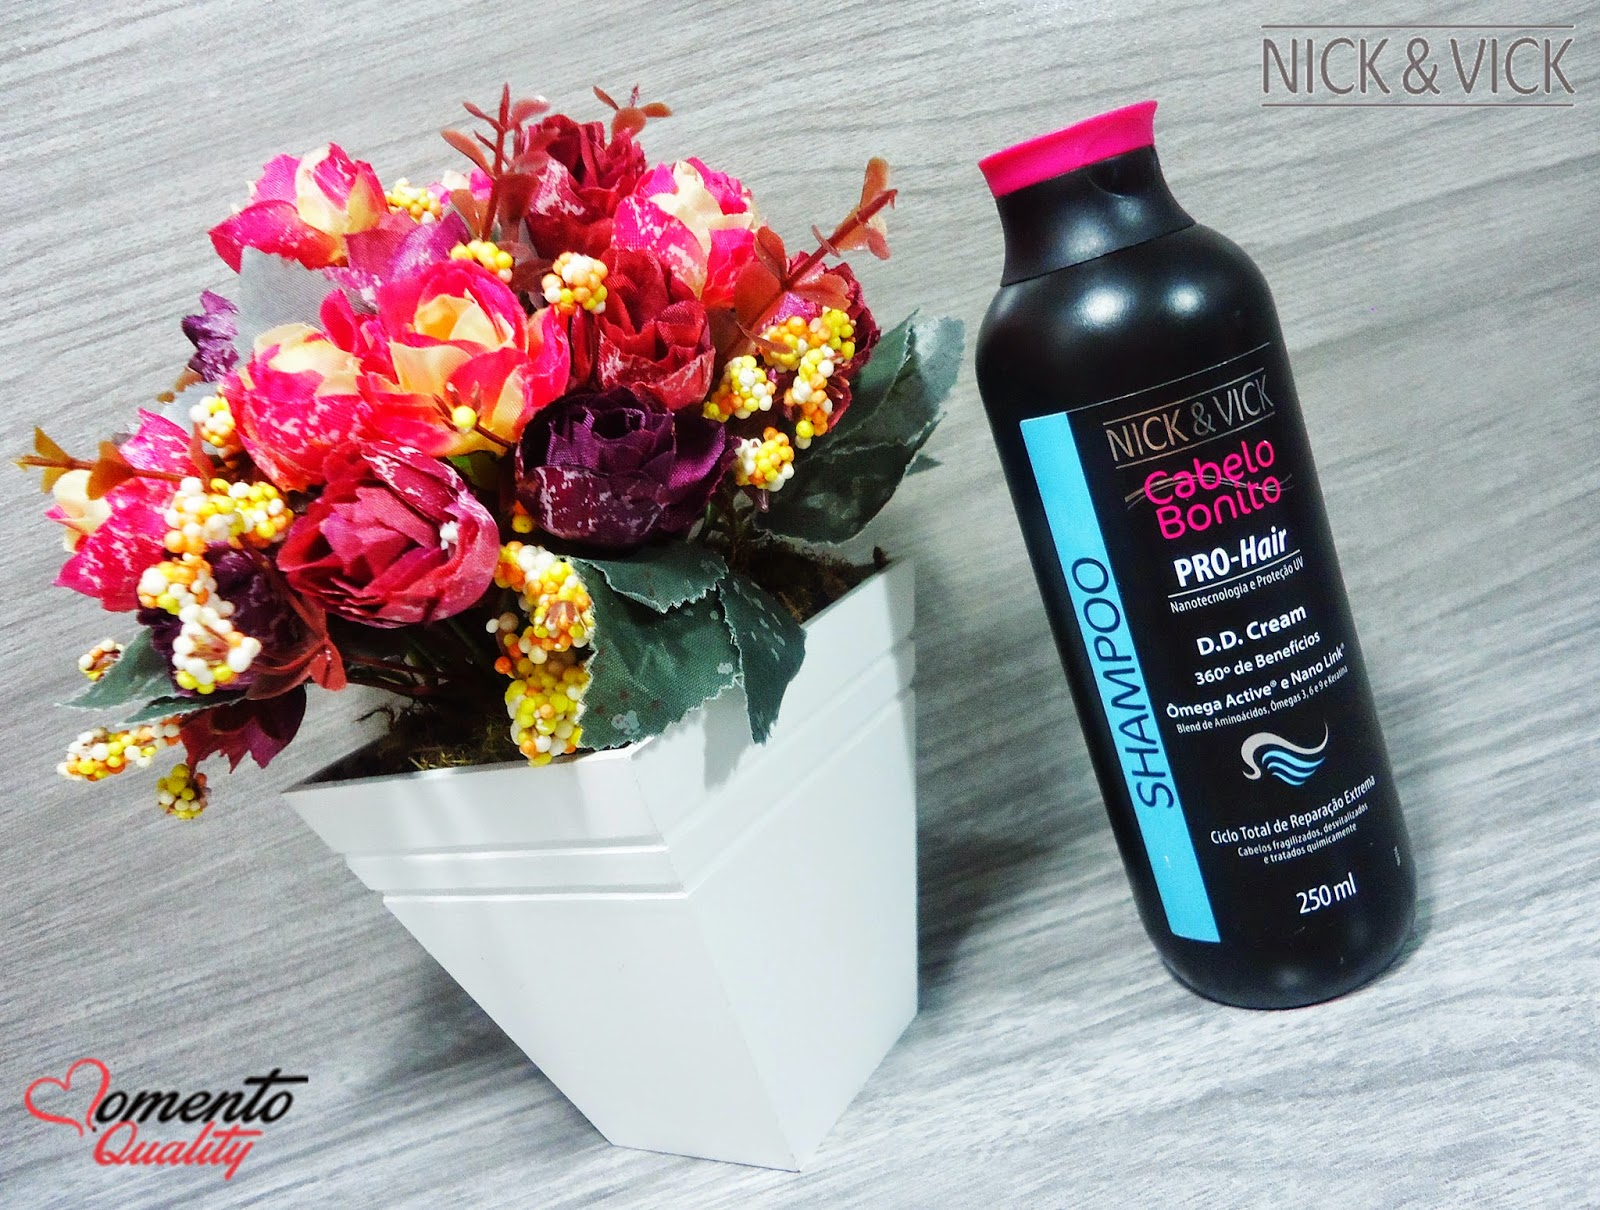 DD Cream Pro Hair Nick & Vick Shampoo